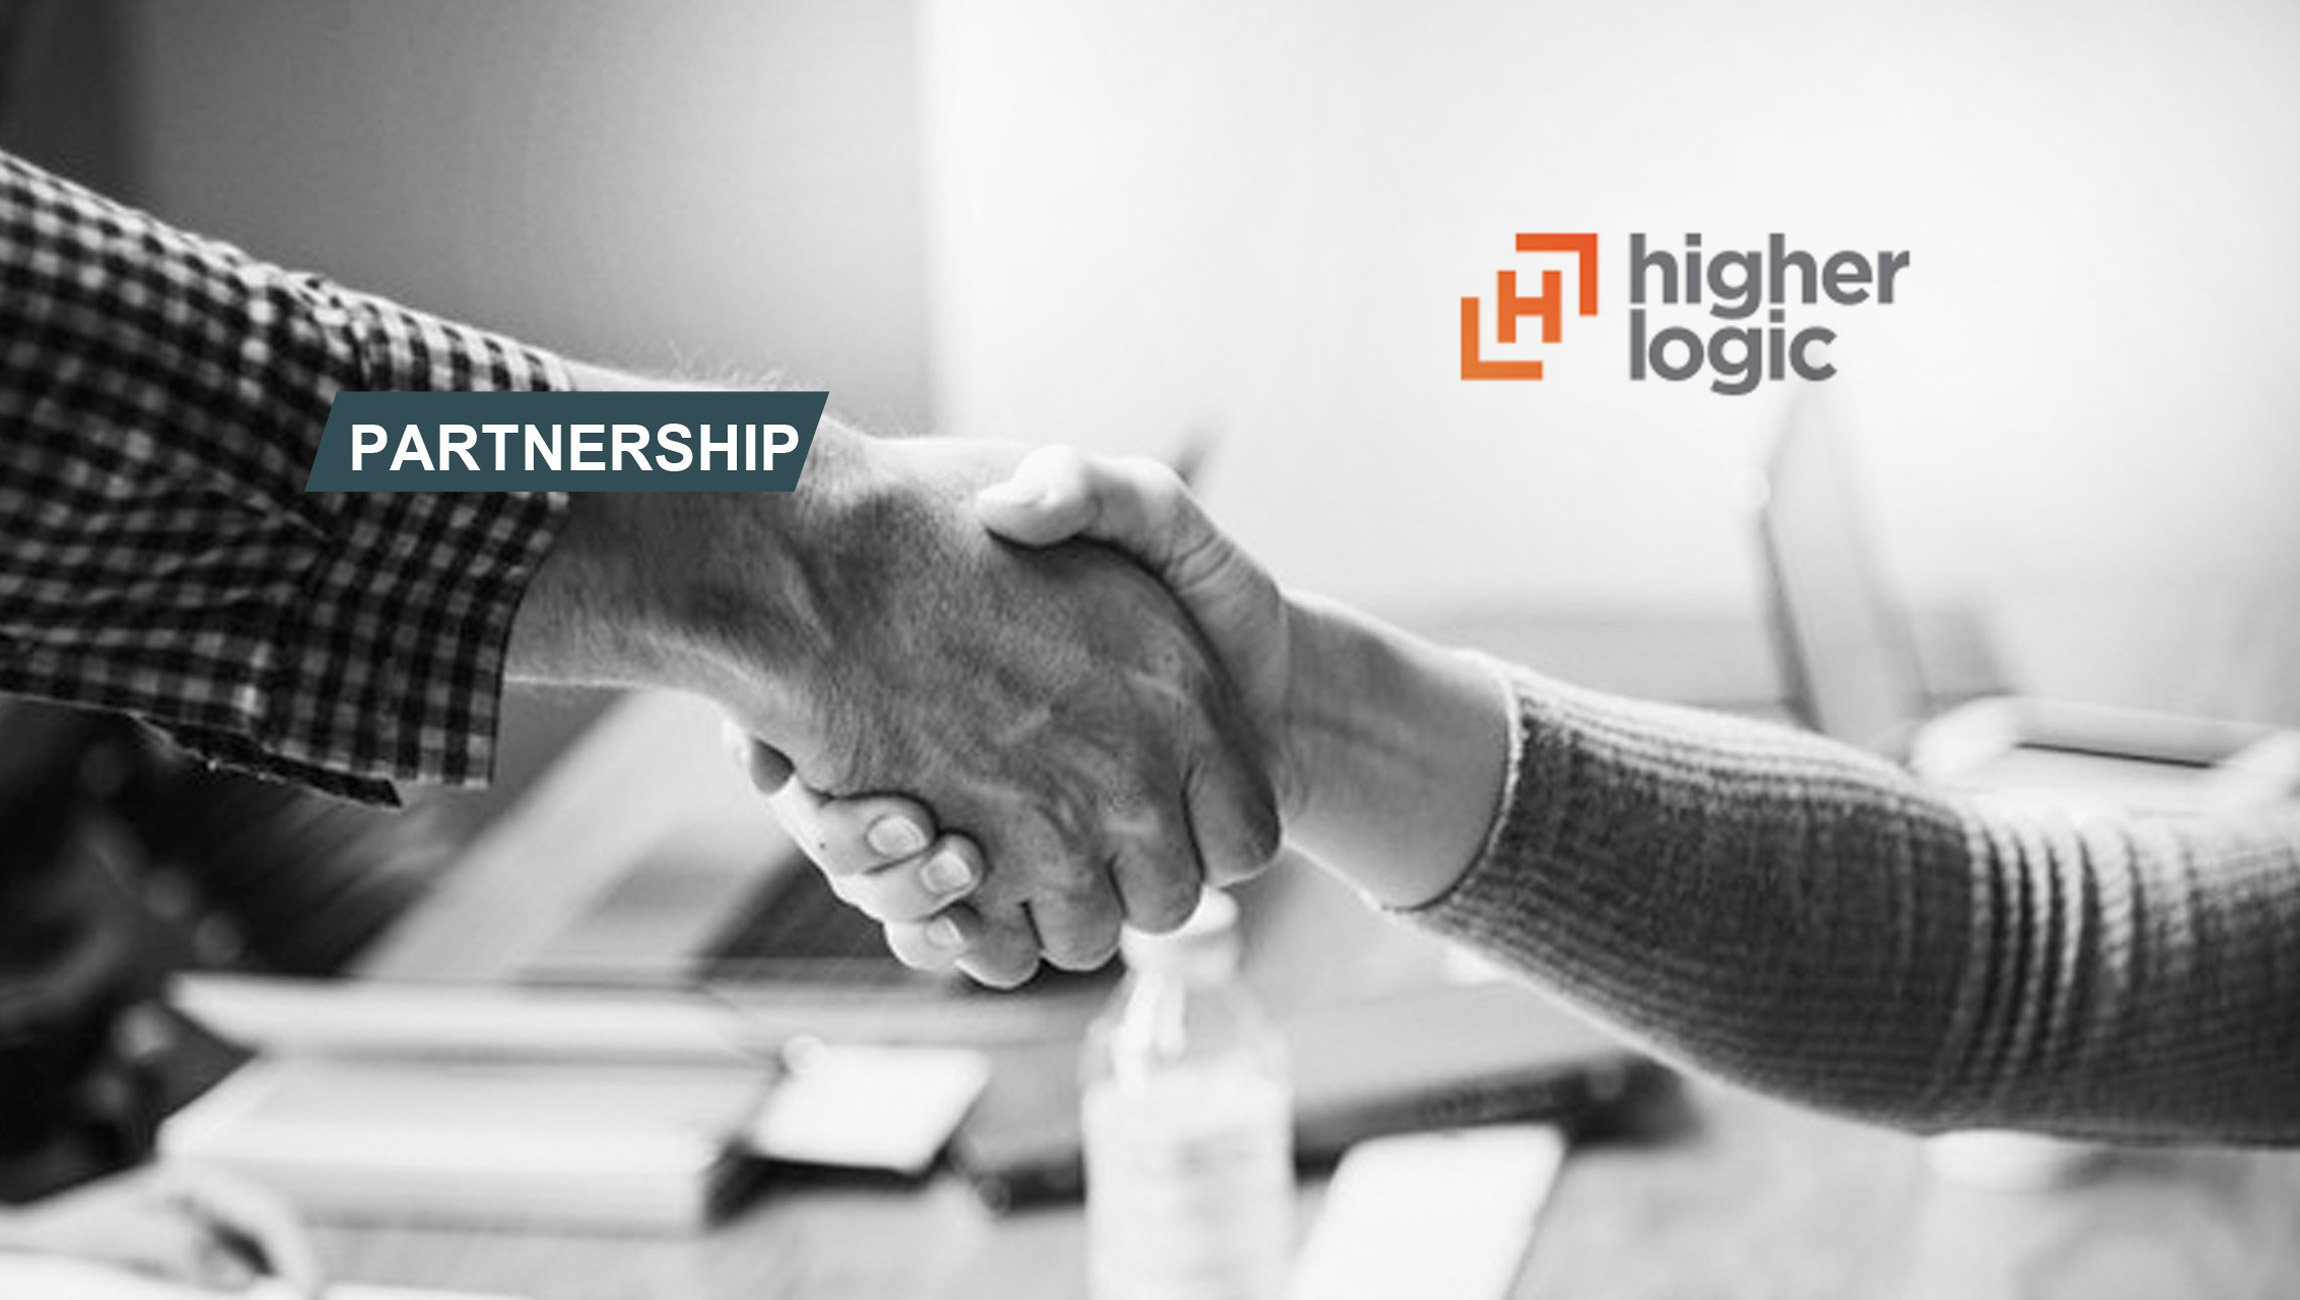 Higher Logic Announces Partnership with Association Technology Solutions to Bring New Innovations to iMIS Customers 1